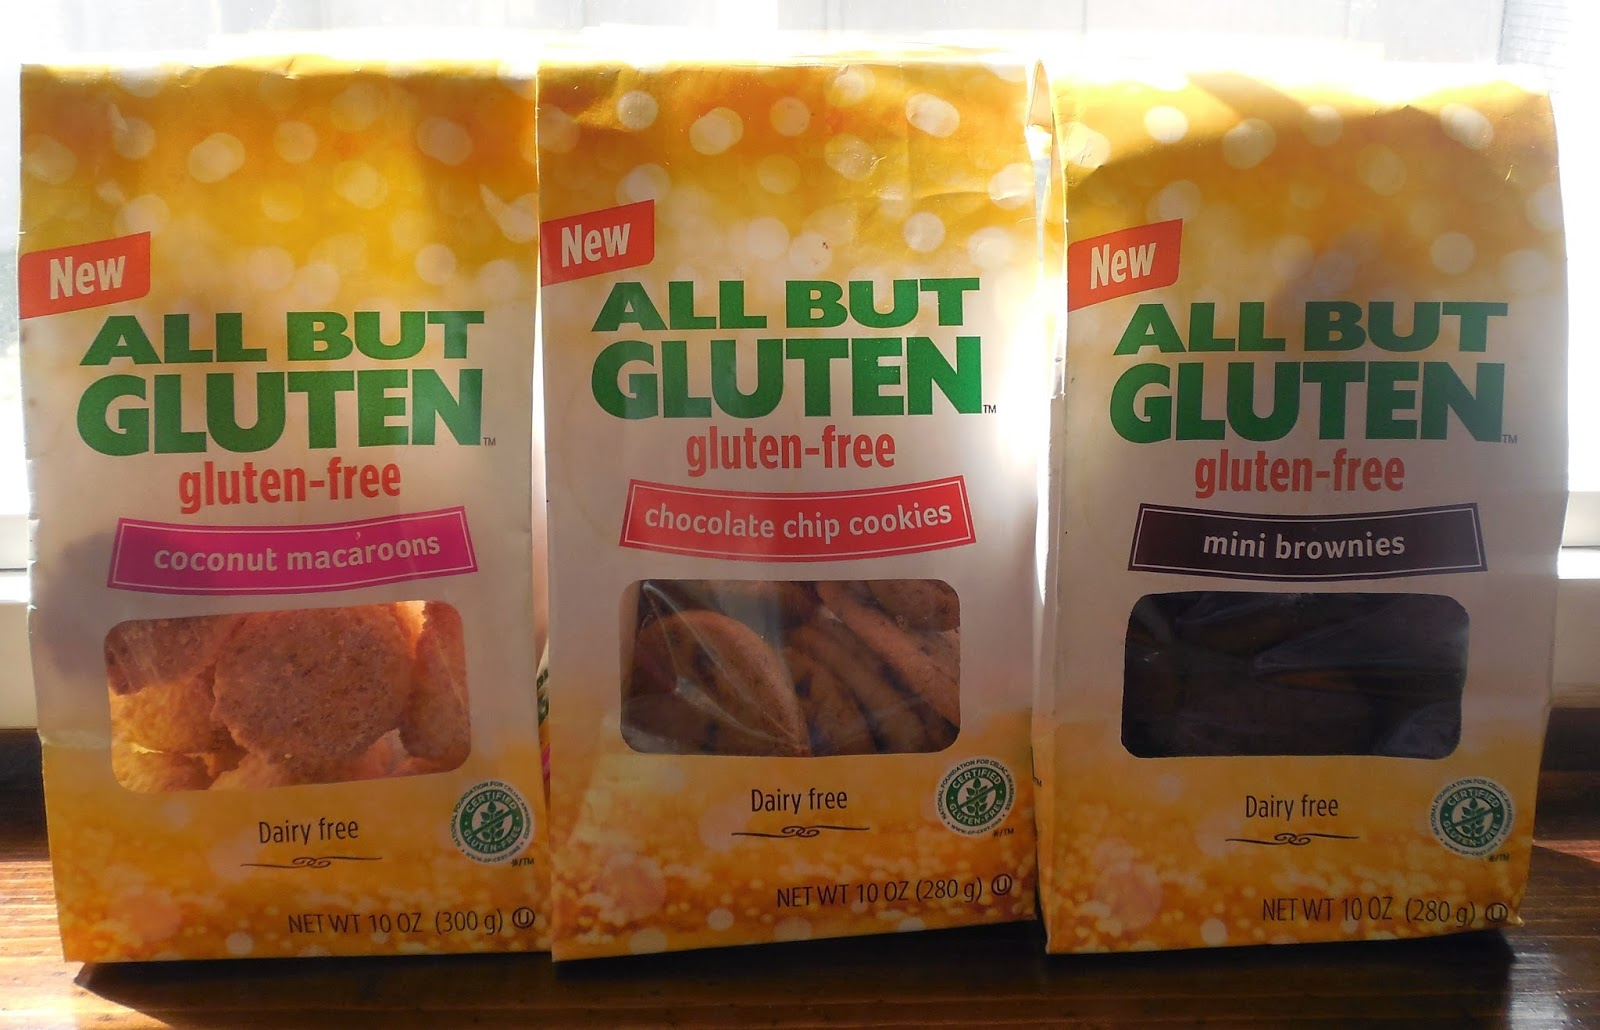 All But Gluten Baked Goods